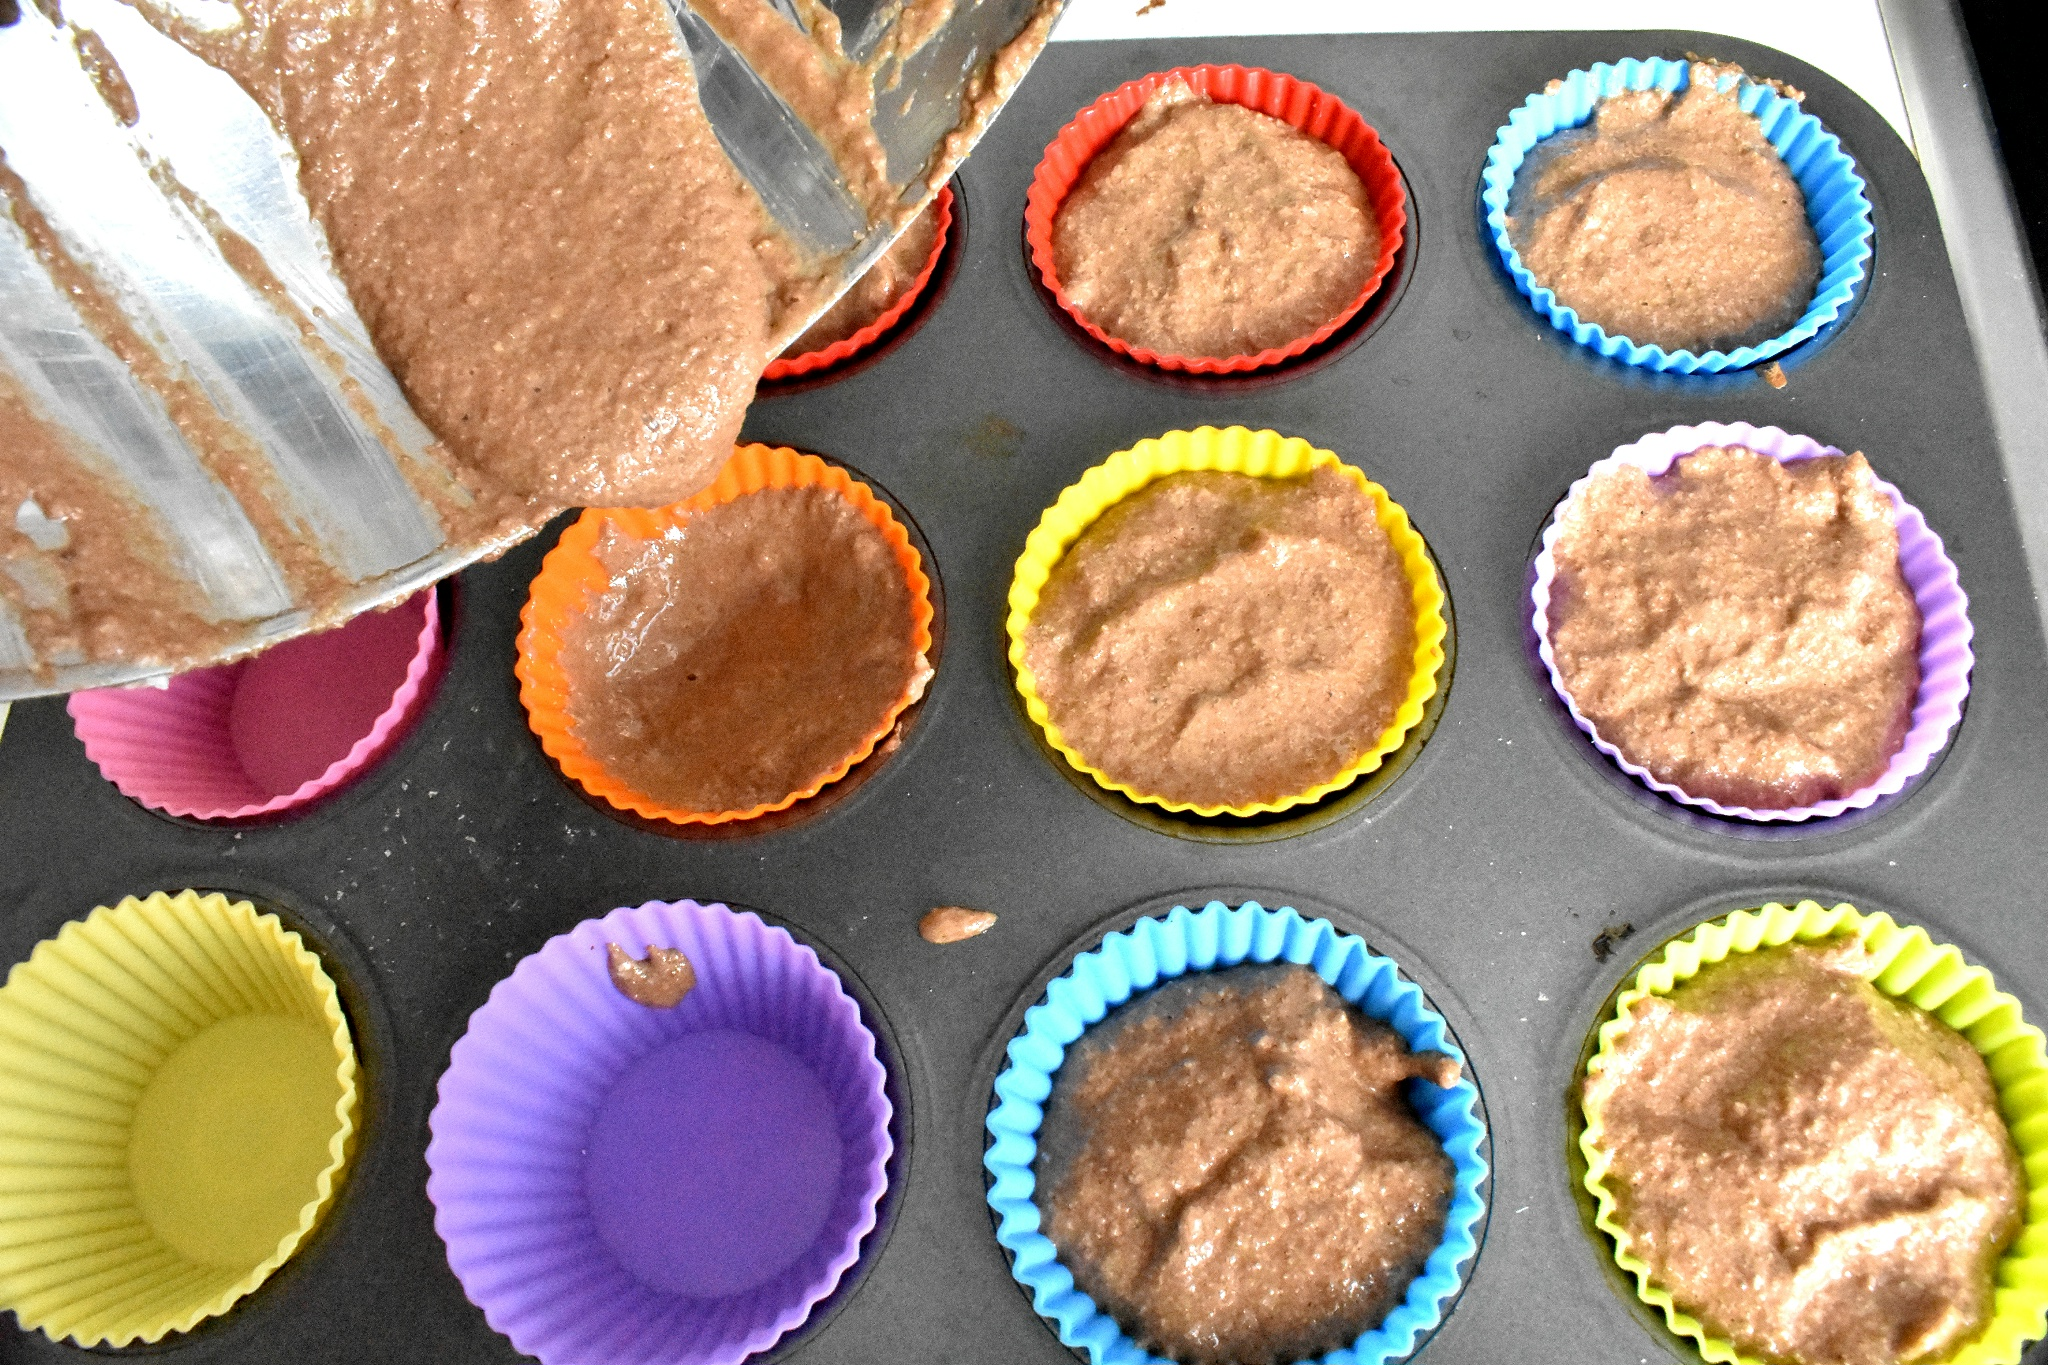 Muffin-gluten-free-chocolate-process-12-SunCakeMom